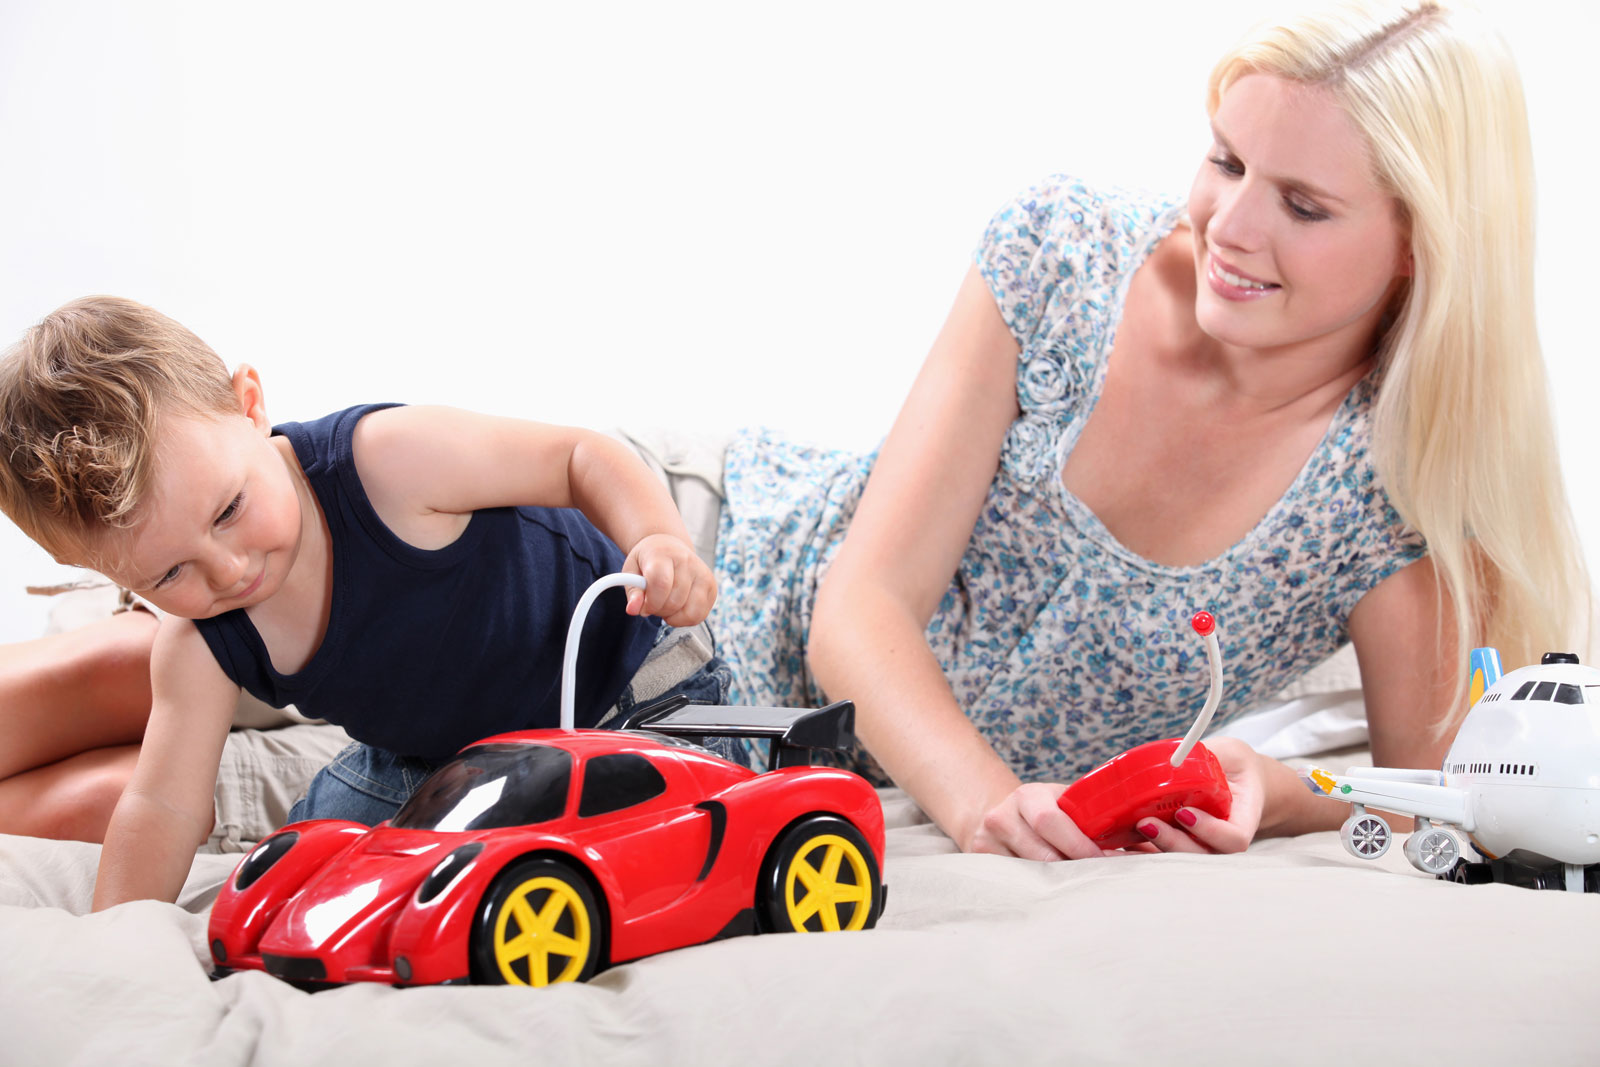 New Research Shows 41% of UK Family Income is Spent on Childcare